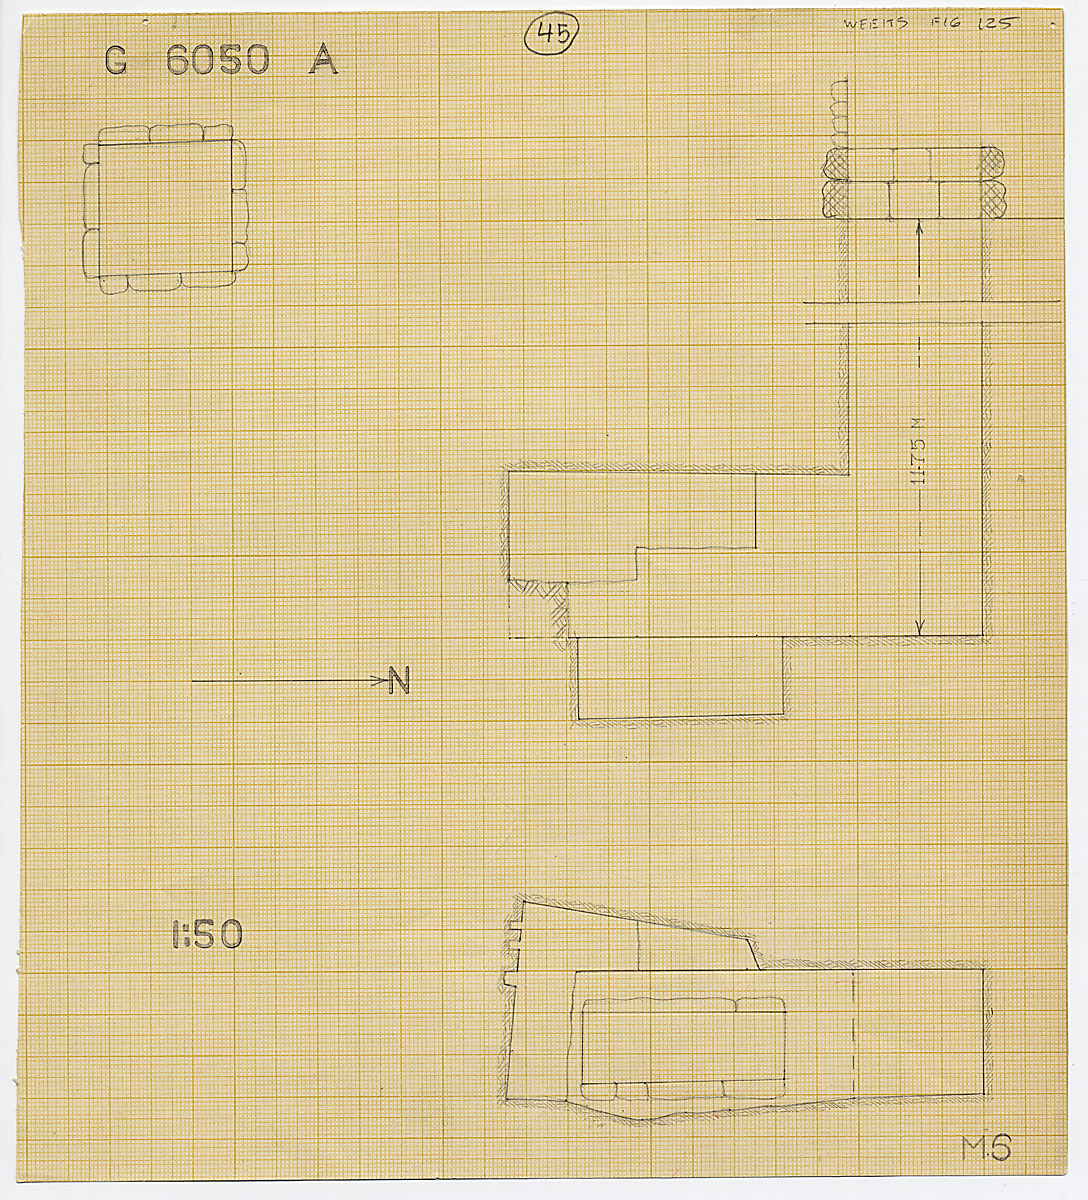 Maps and plans: G 6050, Shaft A